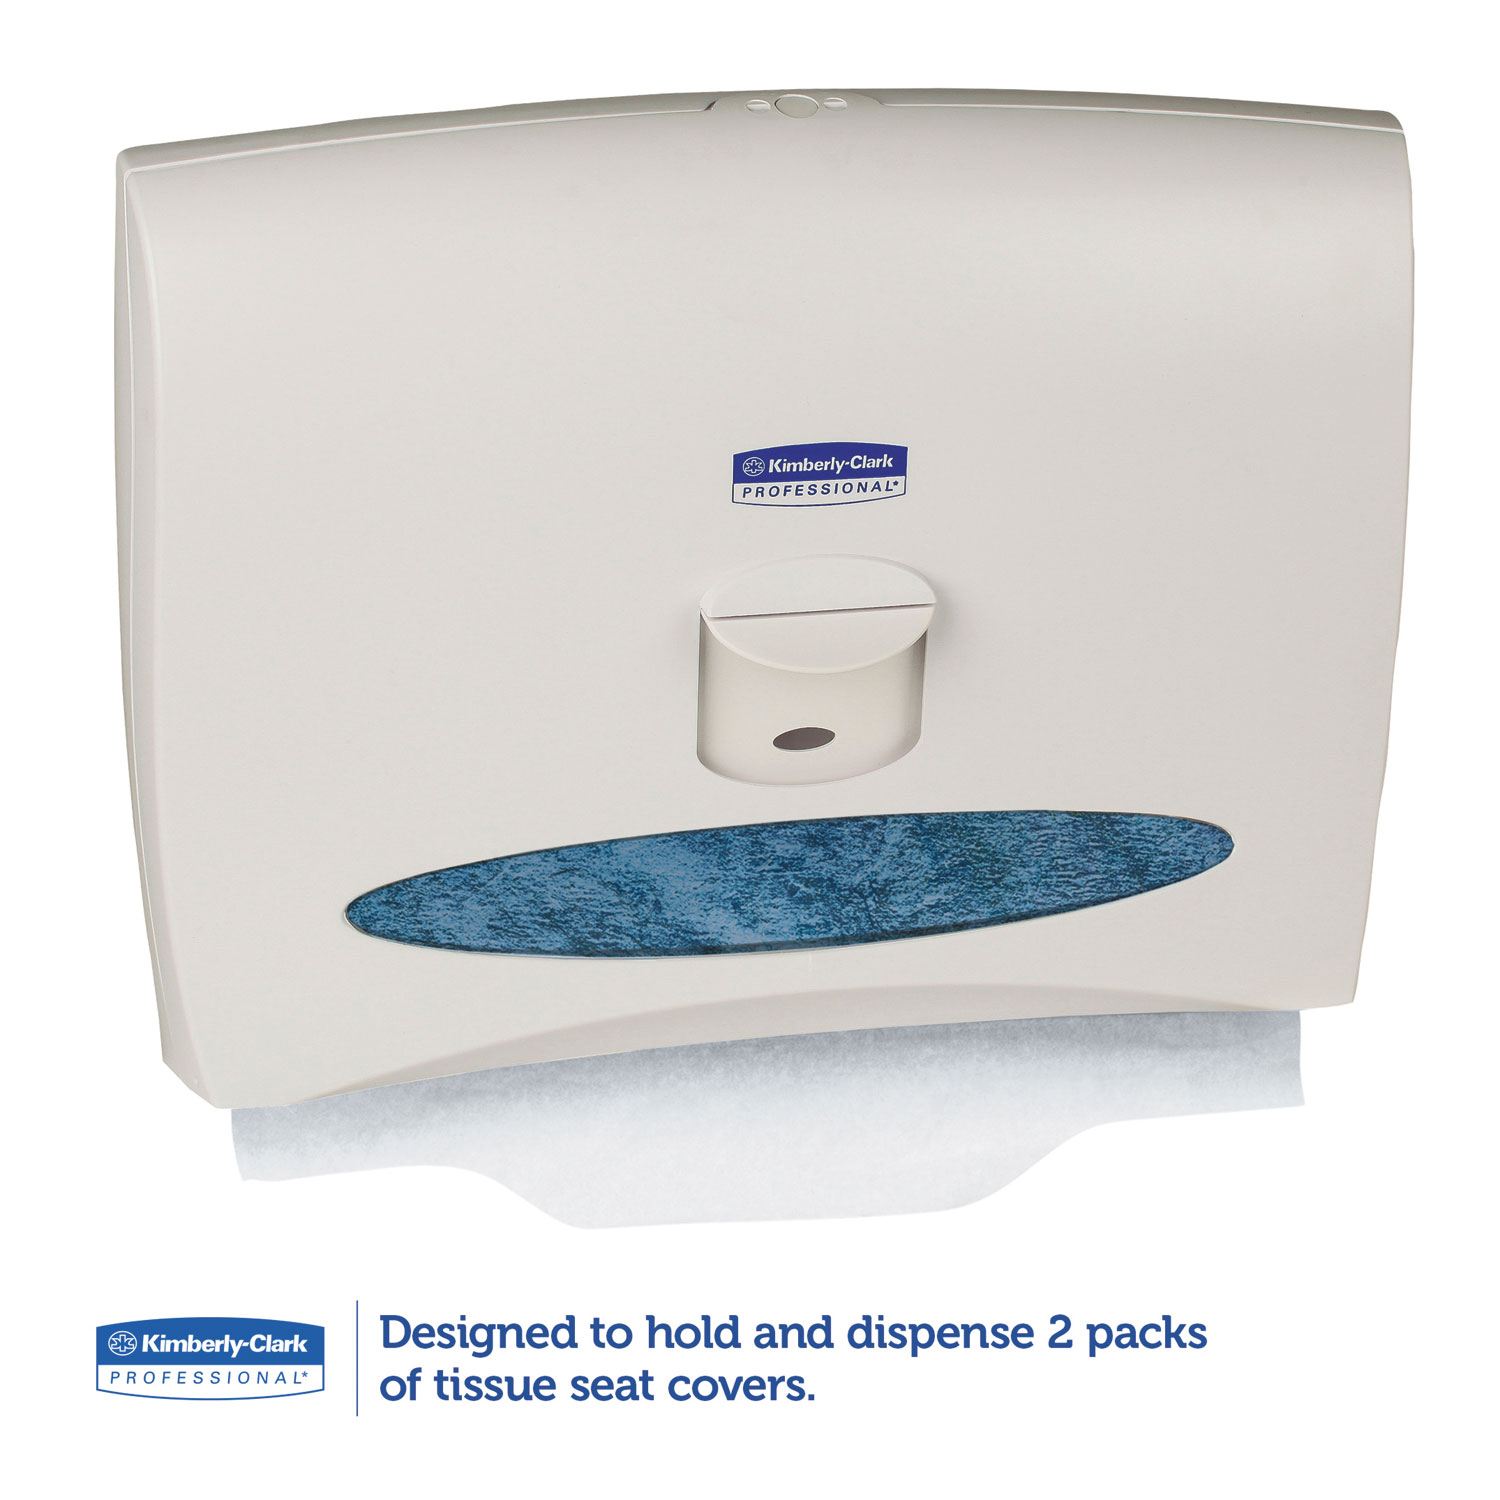 Personal Seats Toilet Seat Cover Dispenser By Kimberly